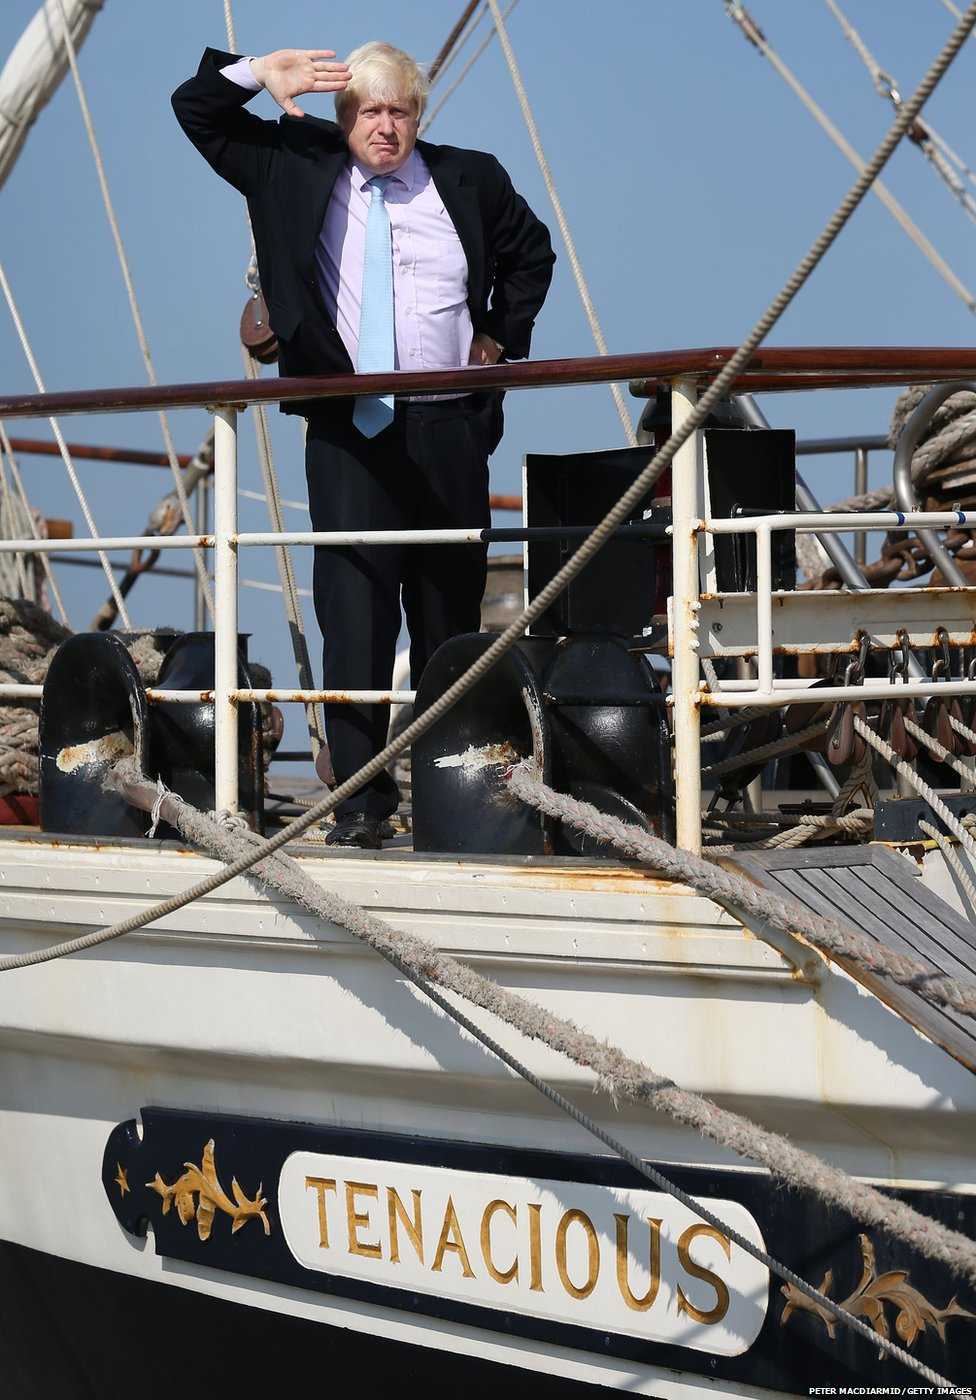 Mayor of London Boris Johnson salutes for photographers during a visit to  Training Ship Tenacious on the River Thames